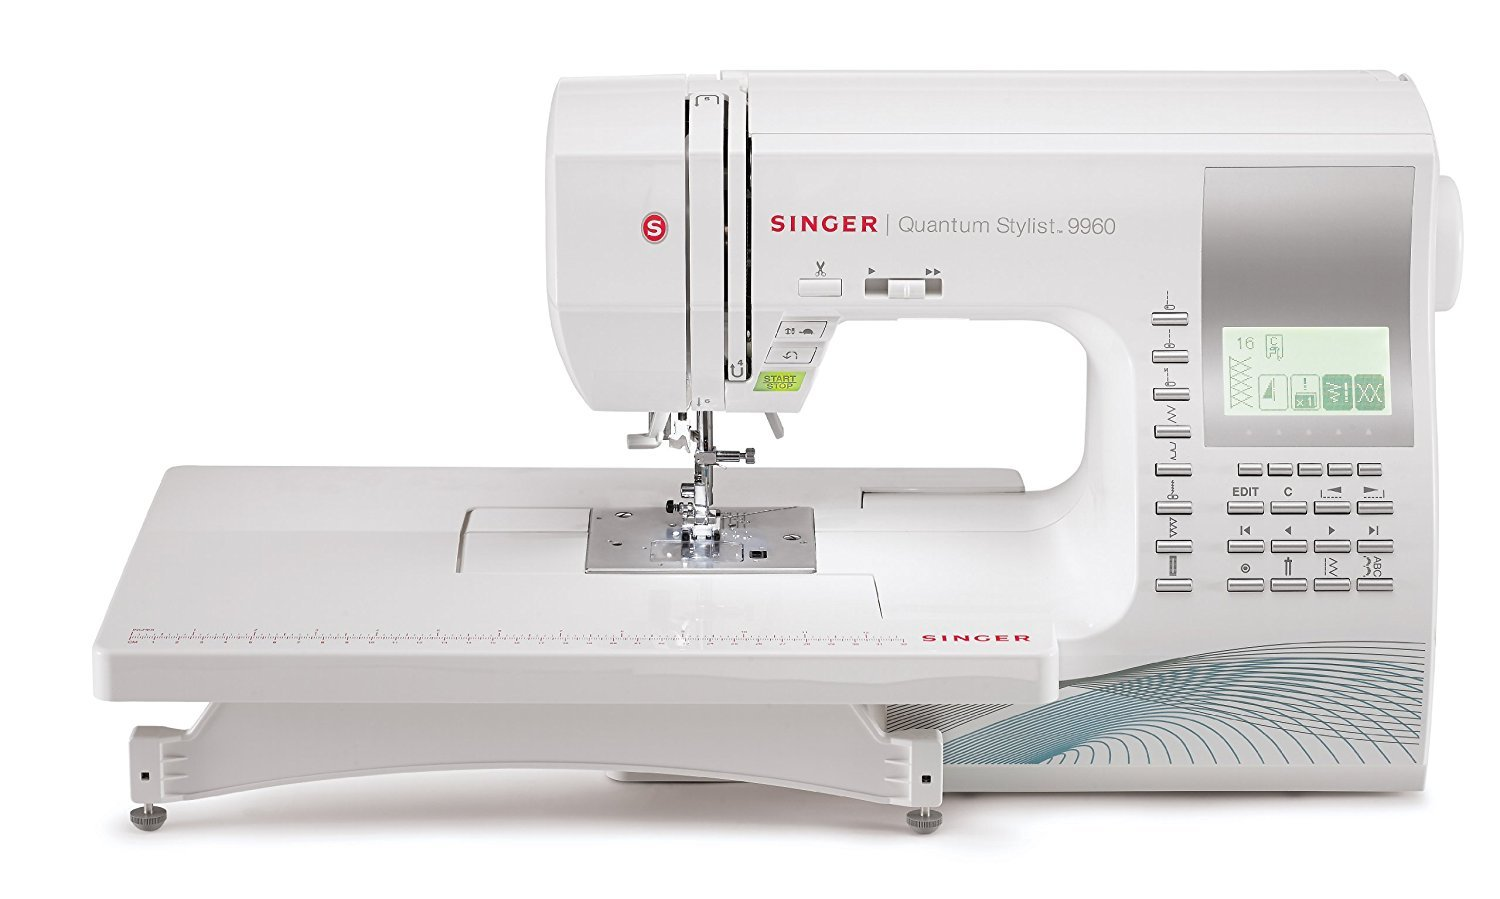 SINGER | | Quantum Stylist 9960 Computerized Portable Sewing Machine with 600-Stitches Electronic Auto Pilot Mode, Extension Table and Bonus Accessories, Perfect for Customizing Projects by SINGER